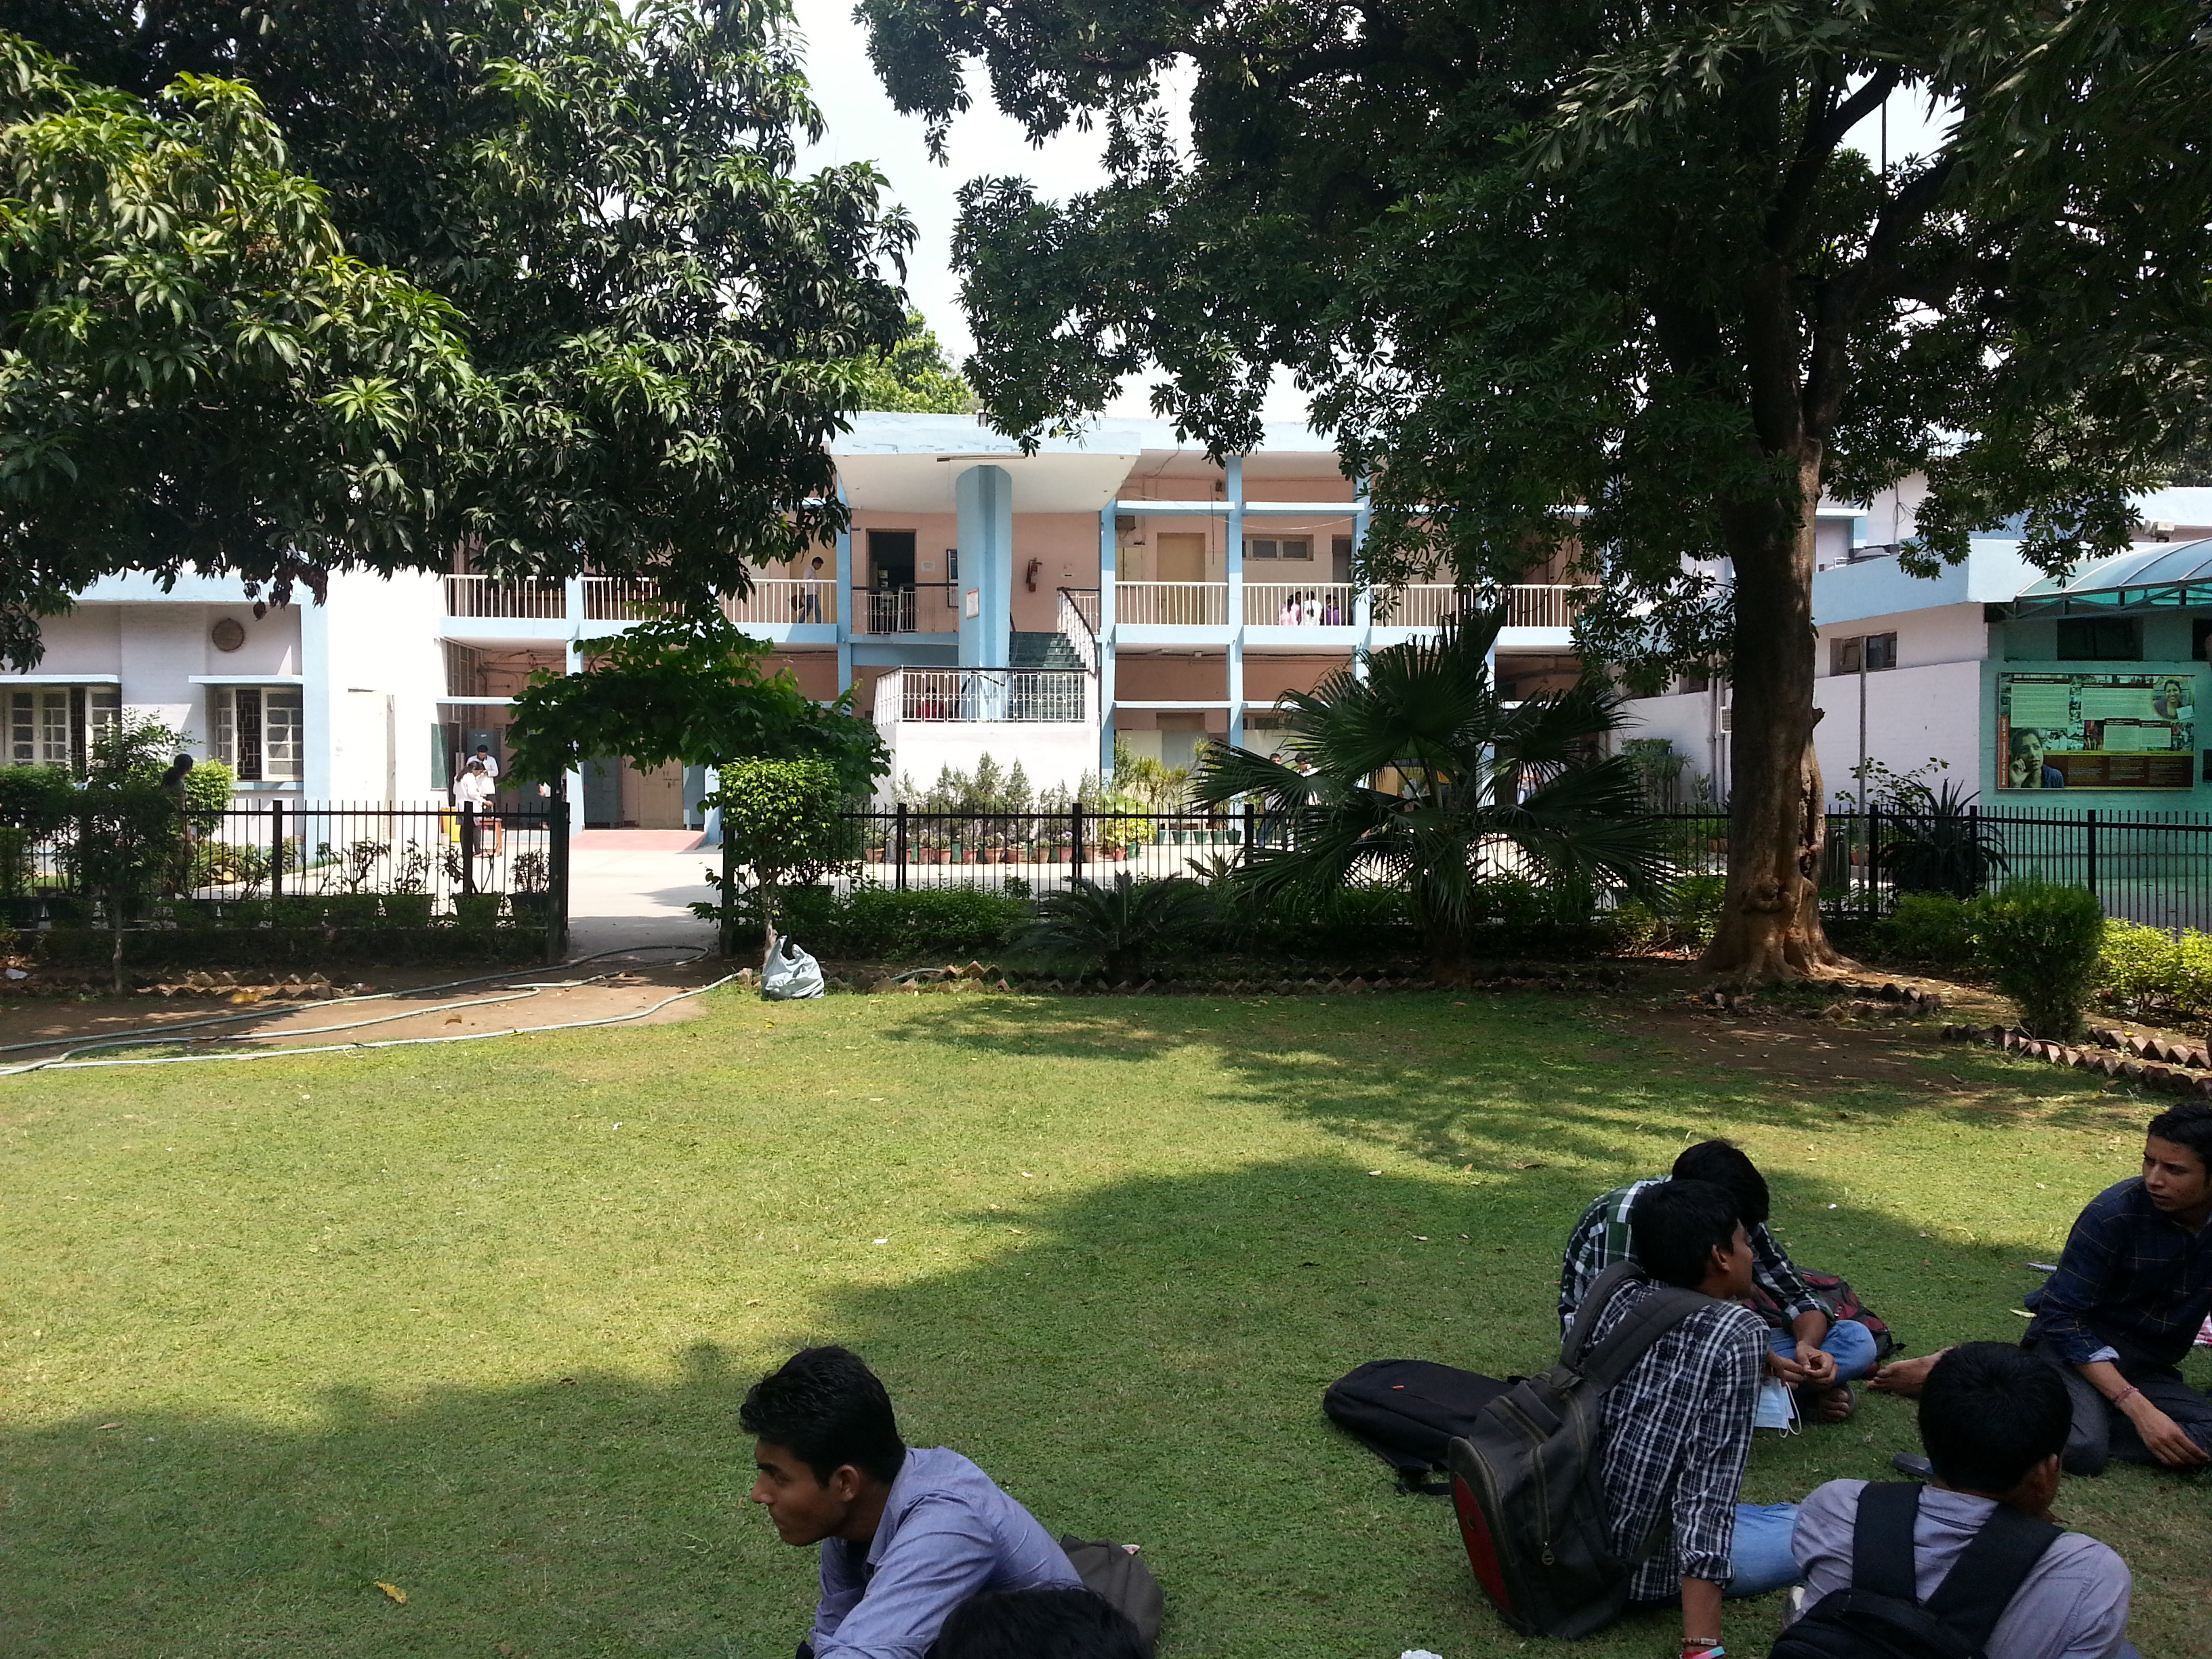 acharya narendra dev college front view latest pics images photos